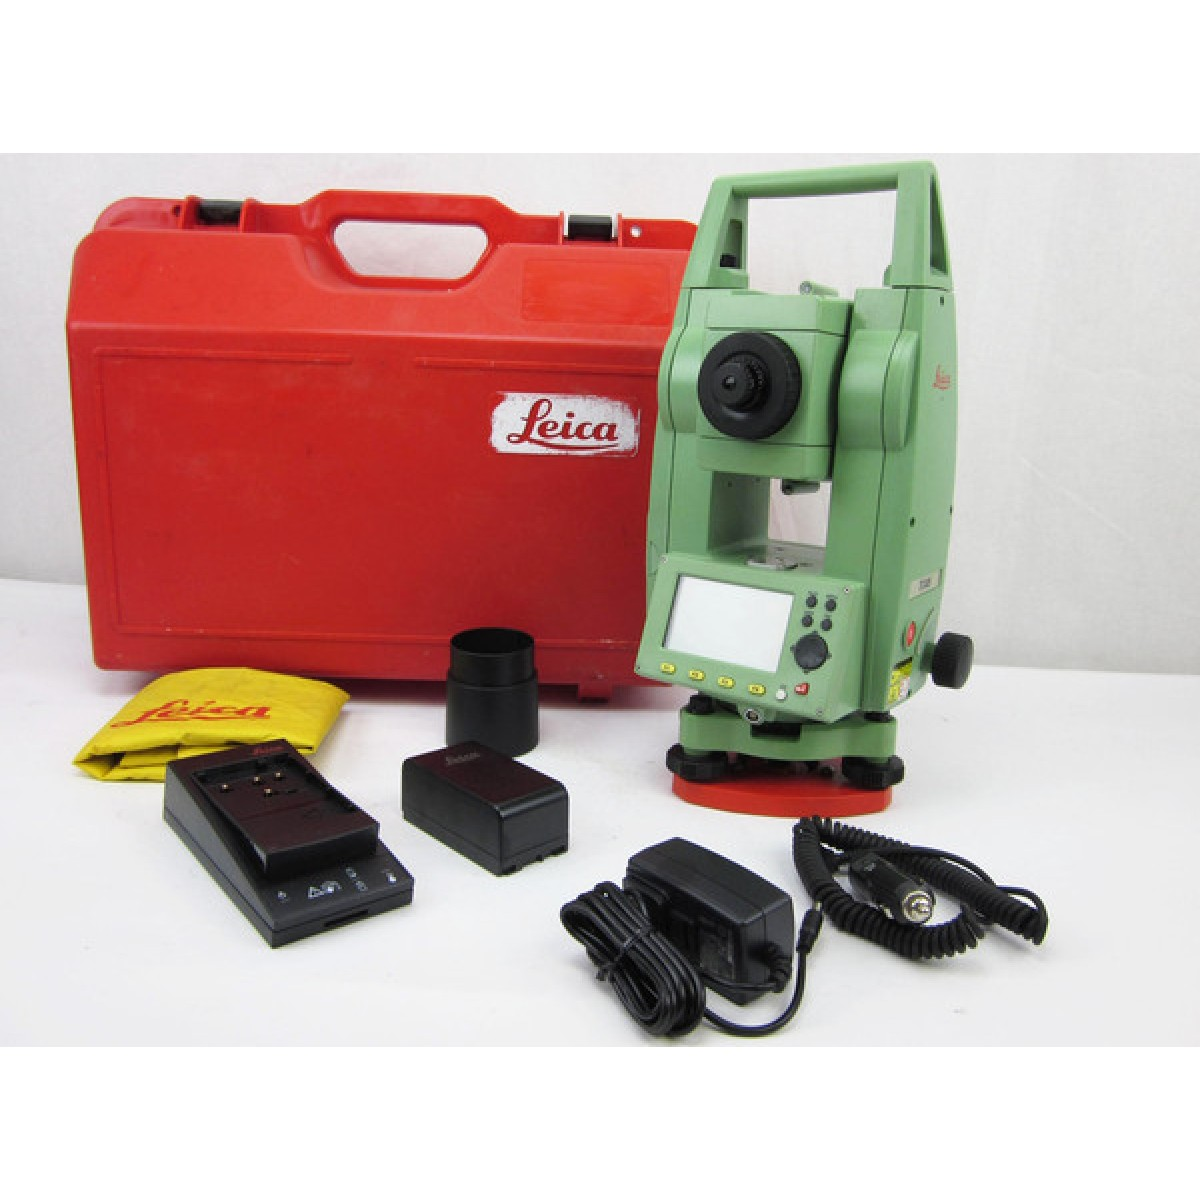 """LEICA TCP1201 1"""" COMPLETE ROBOTIC TOTAL STATION FOR SURVEYING"""